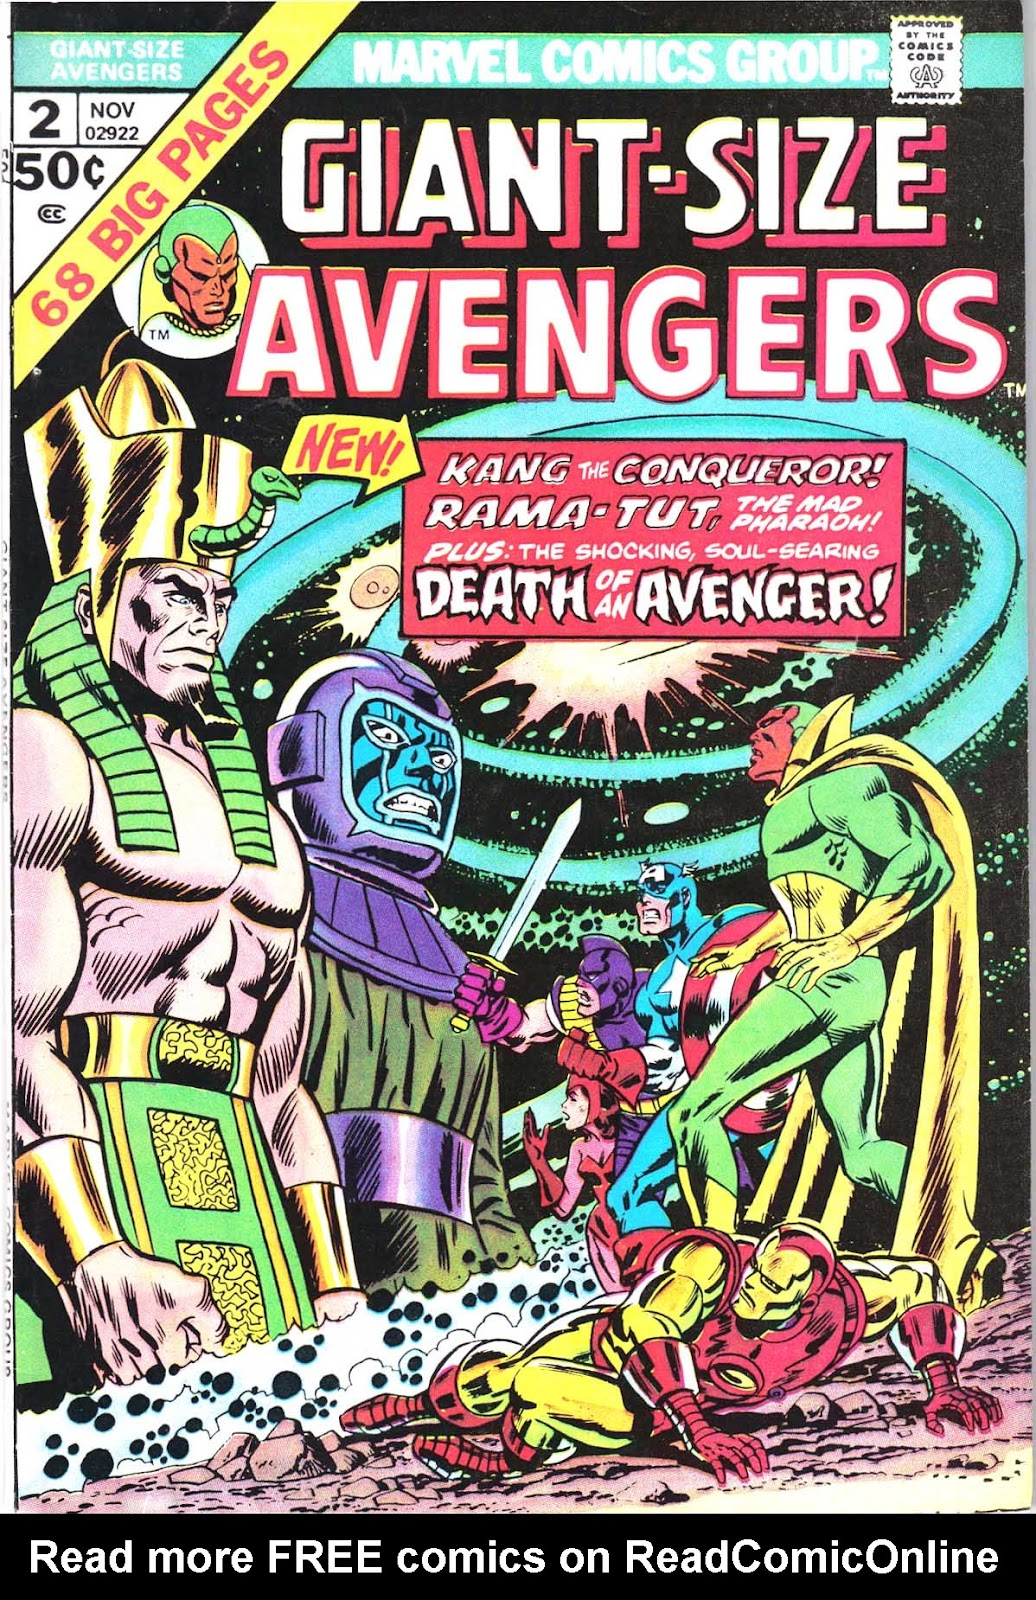 Giant-Size Avengers (1974) issue 2 - Page 1